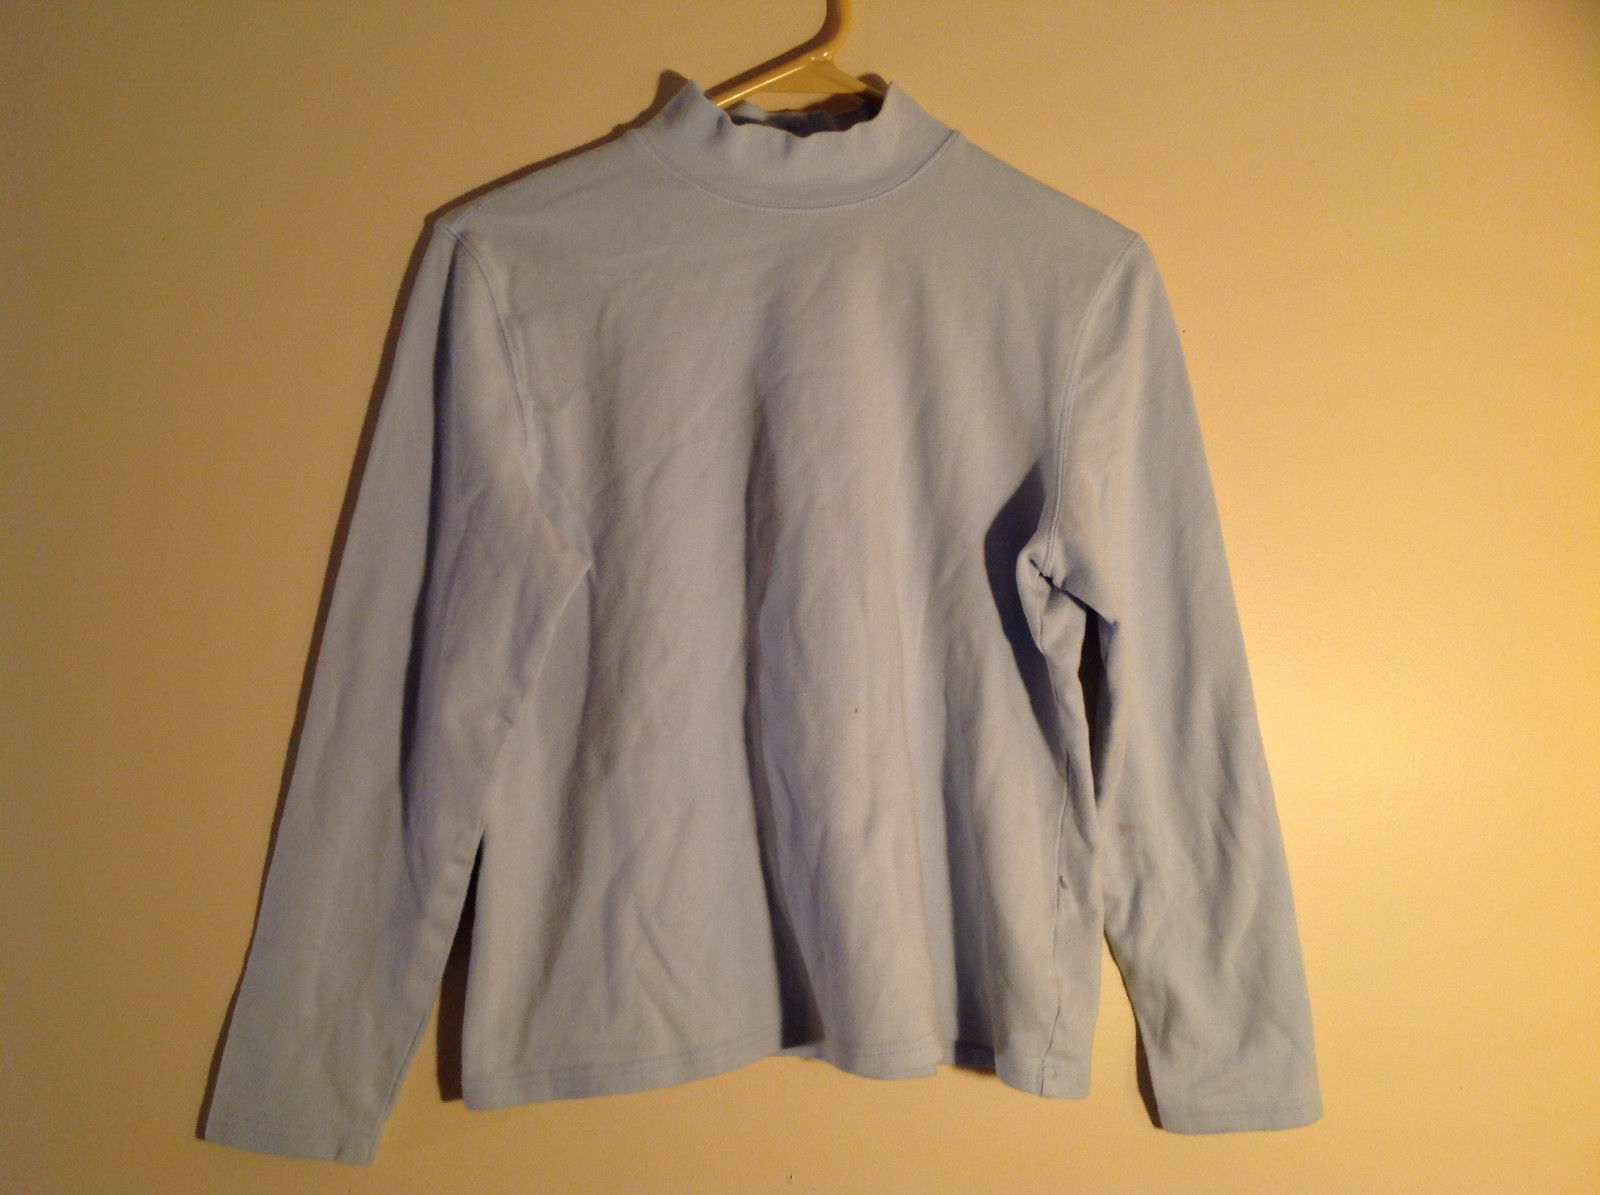 Croft and Barrow Light Blue Long Sleeve Turtleneck Shirt Size Petite Large